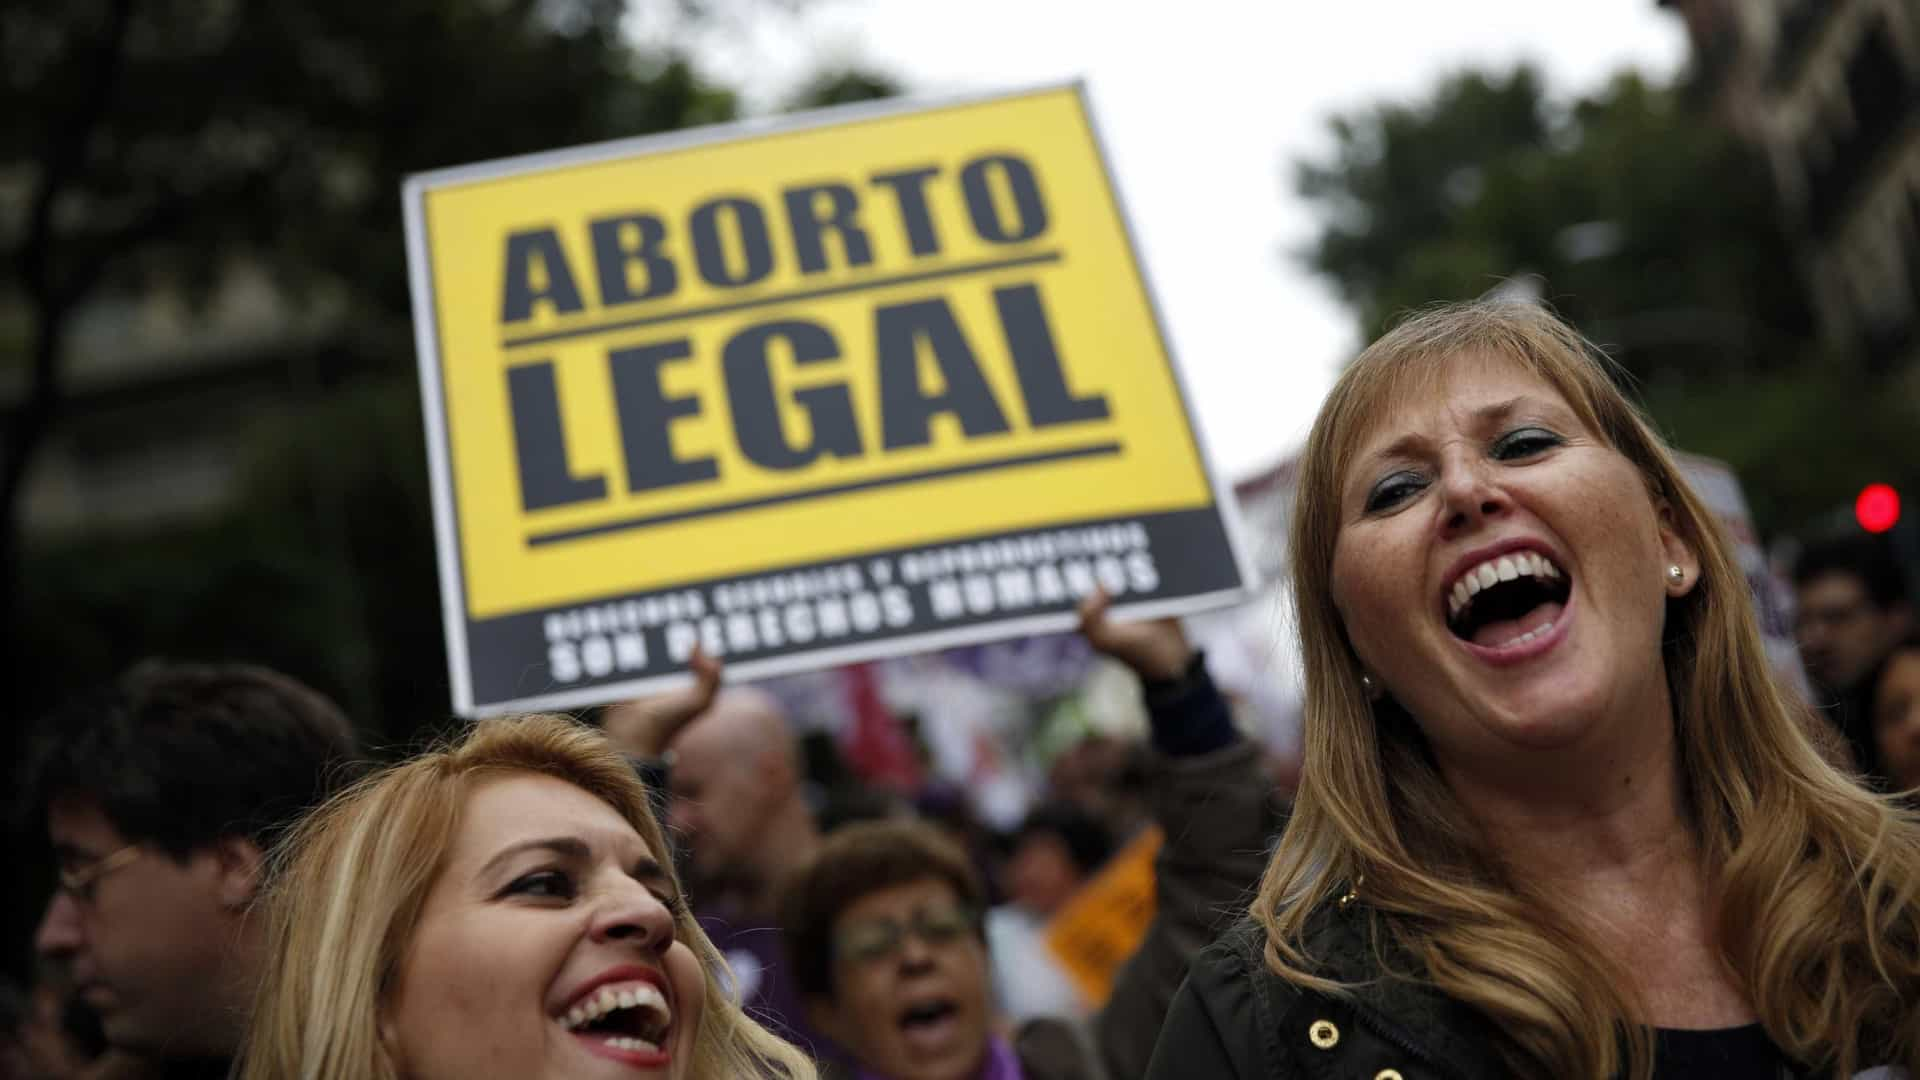 Aborto legal e educação sexual marcaram 50 anos do planeamento familiar